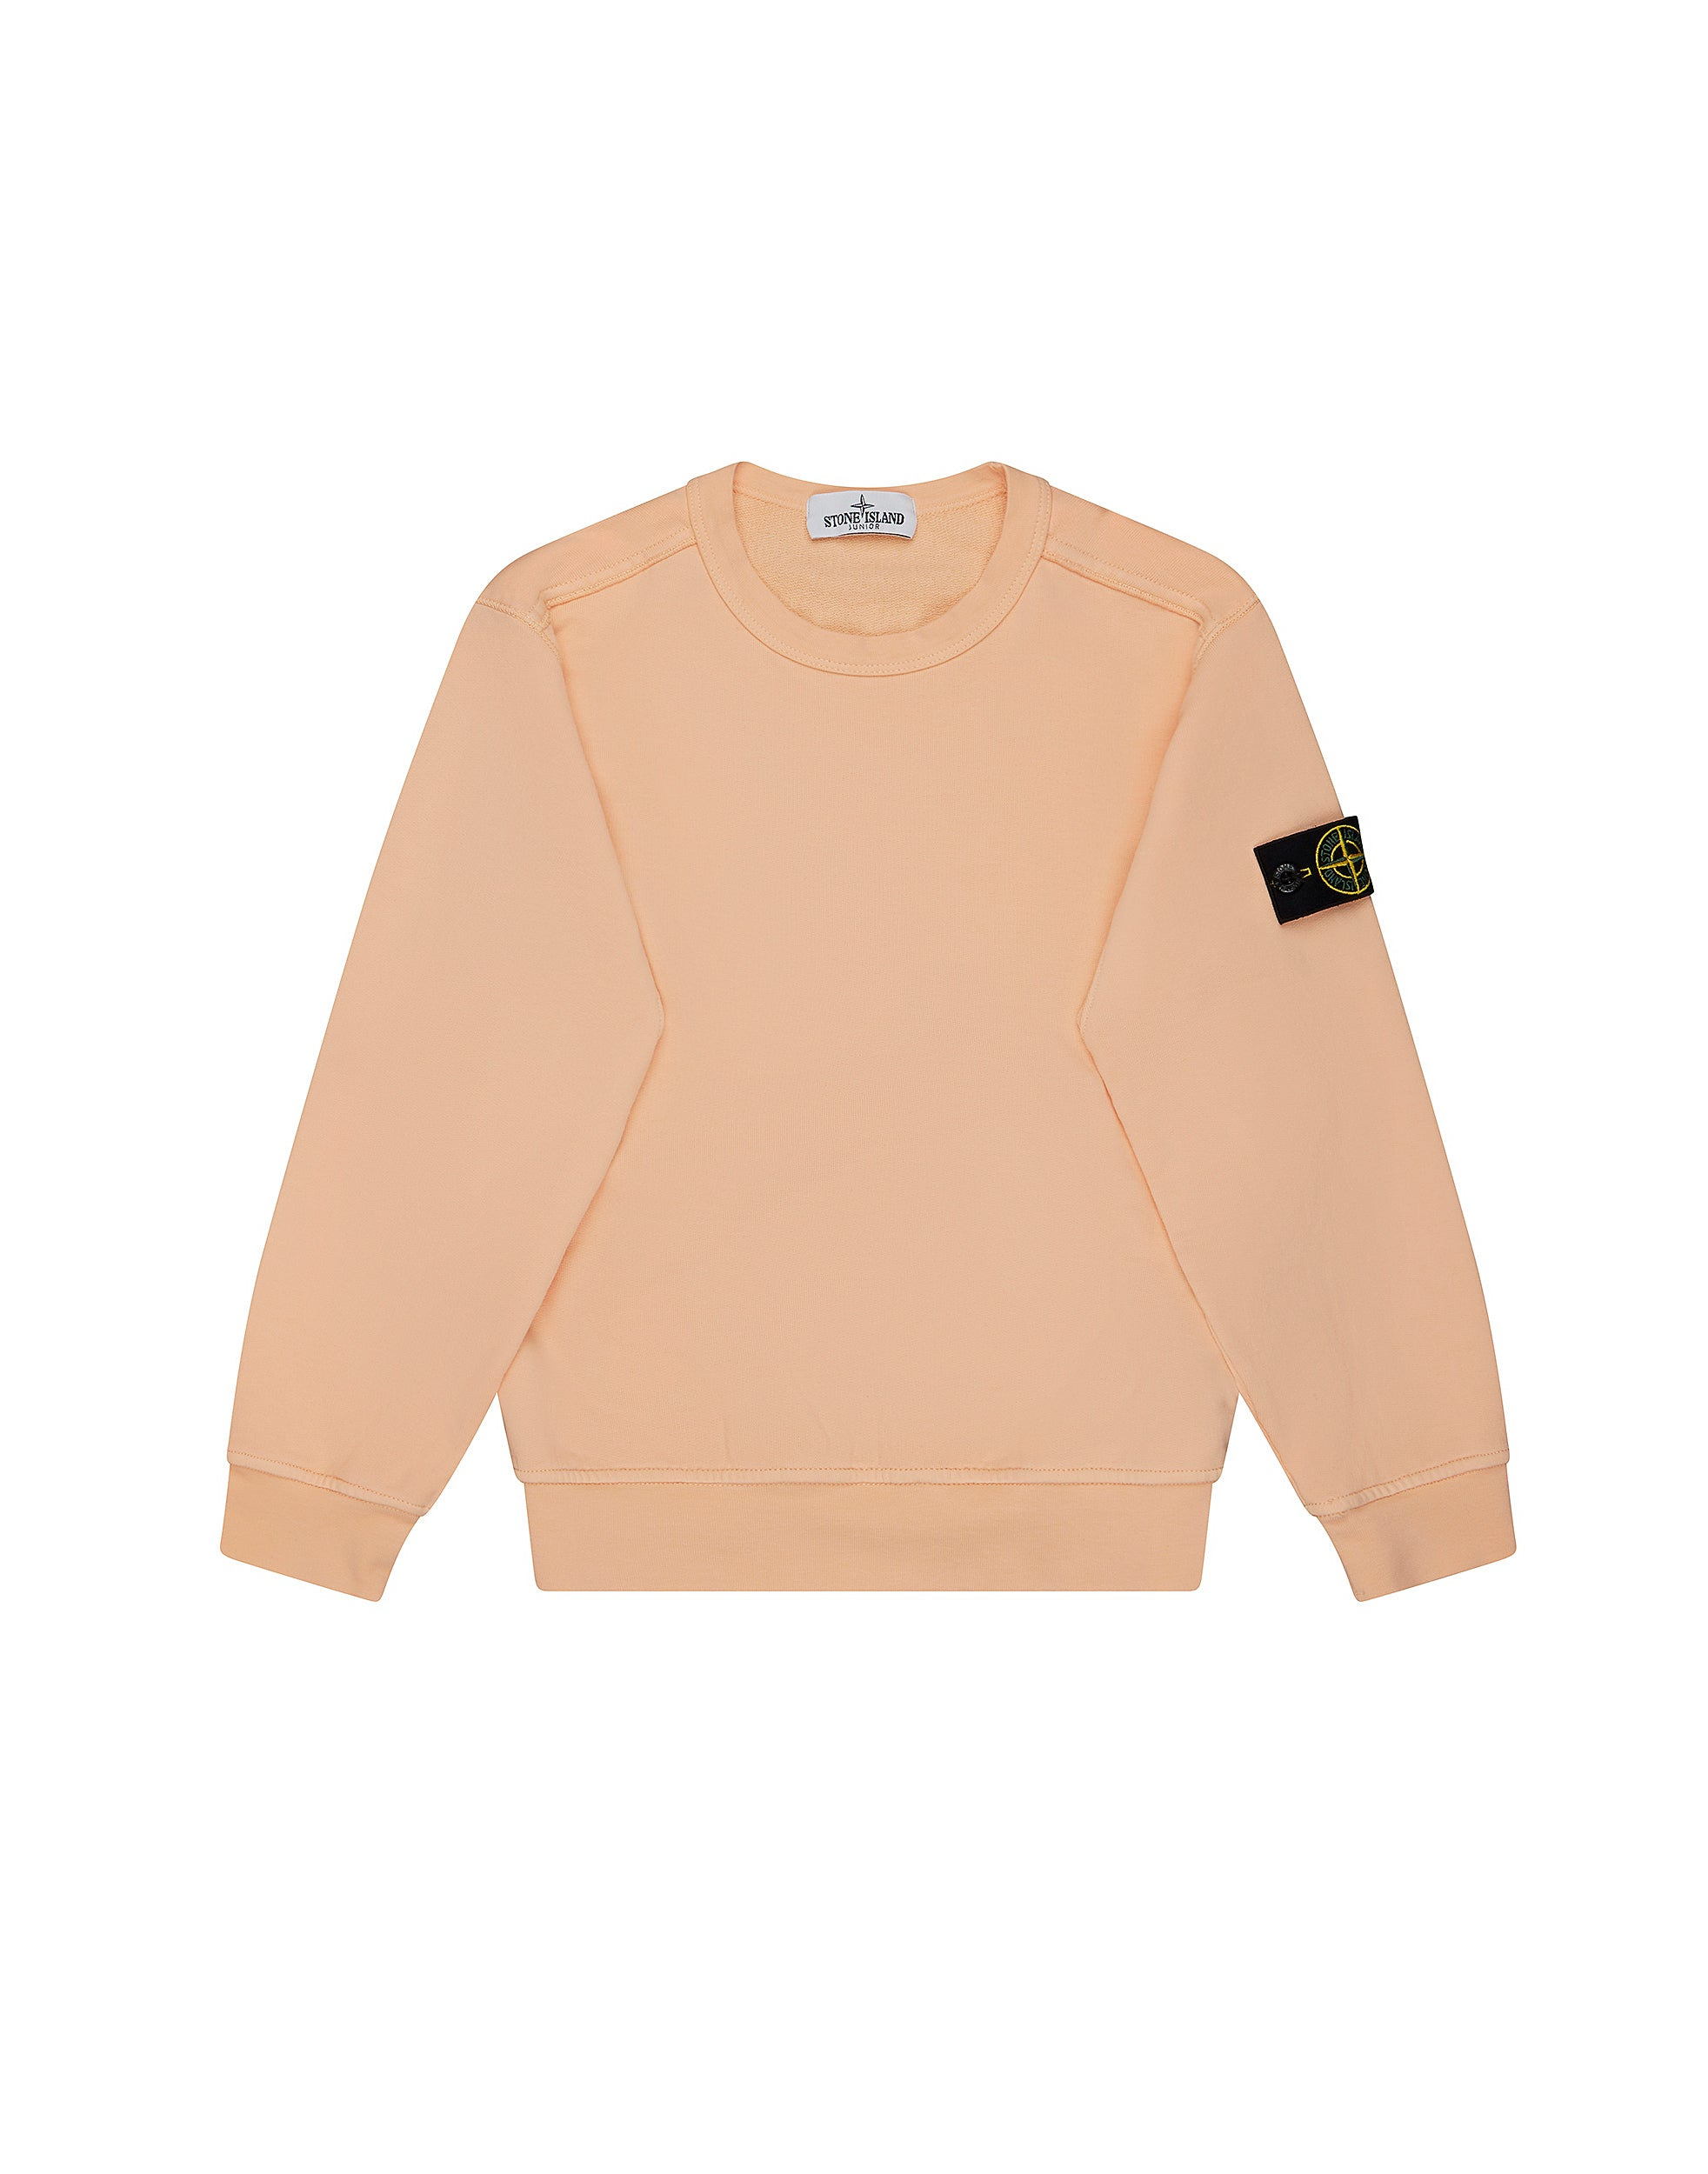 61040 Crewneck Sweatshirt in Salmon